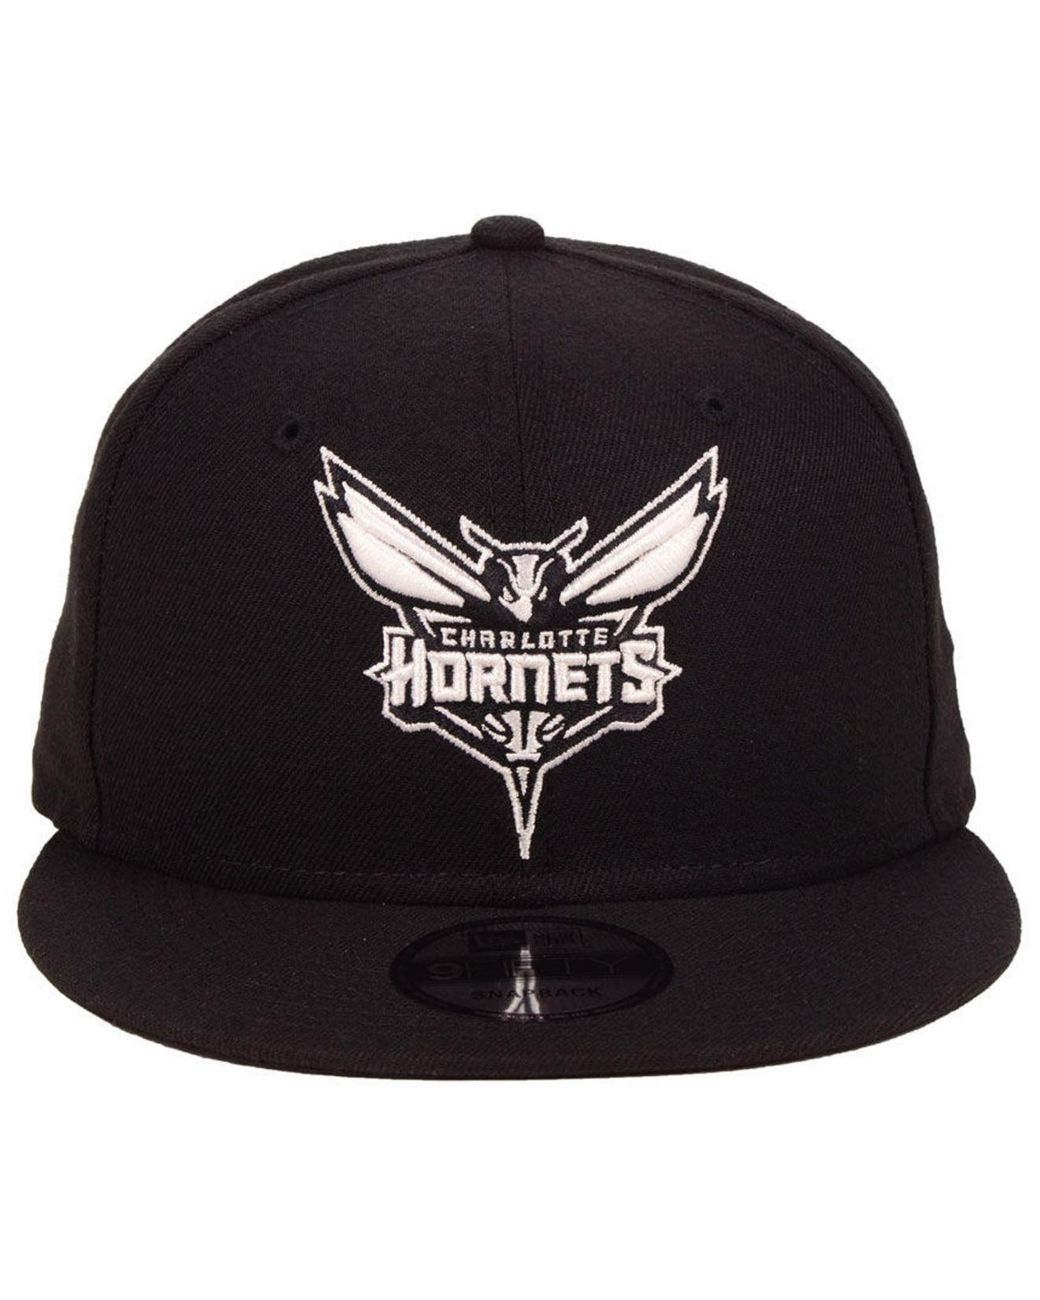 factory outlet new images of shopping KTZ Synthetic Charlotte Hornets Black White 9fifty Snapback Cap ...